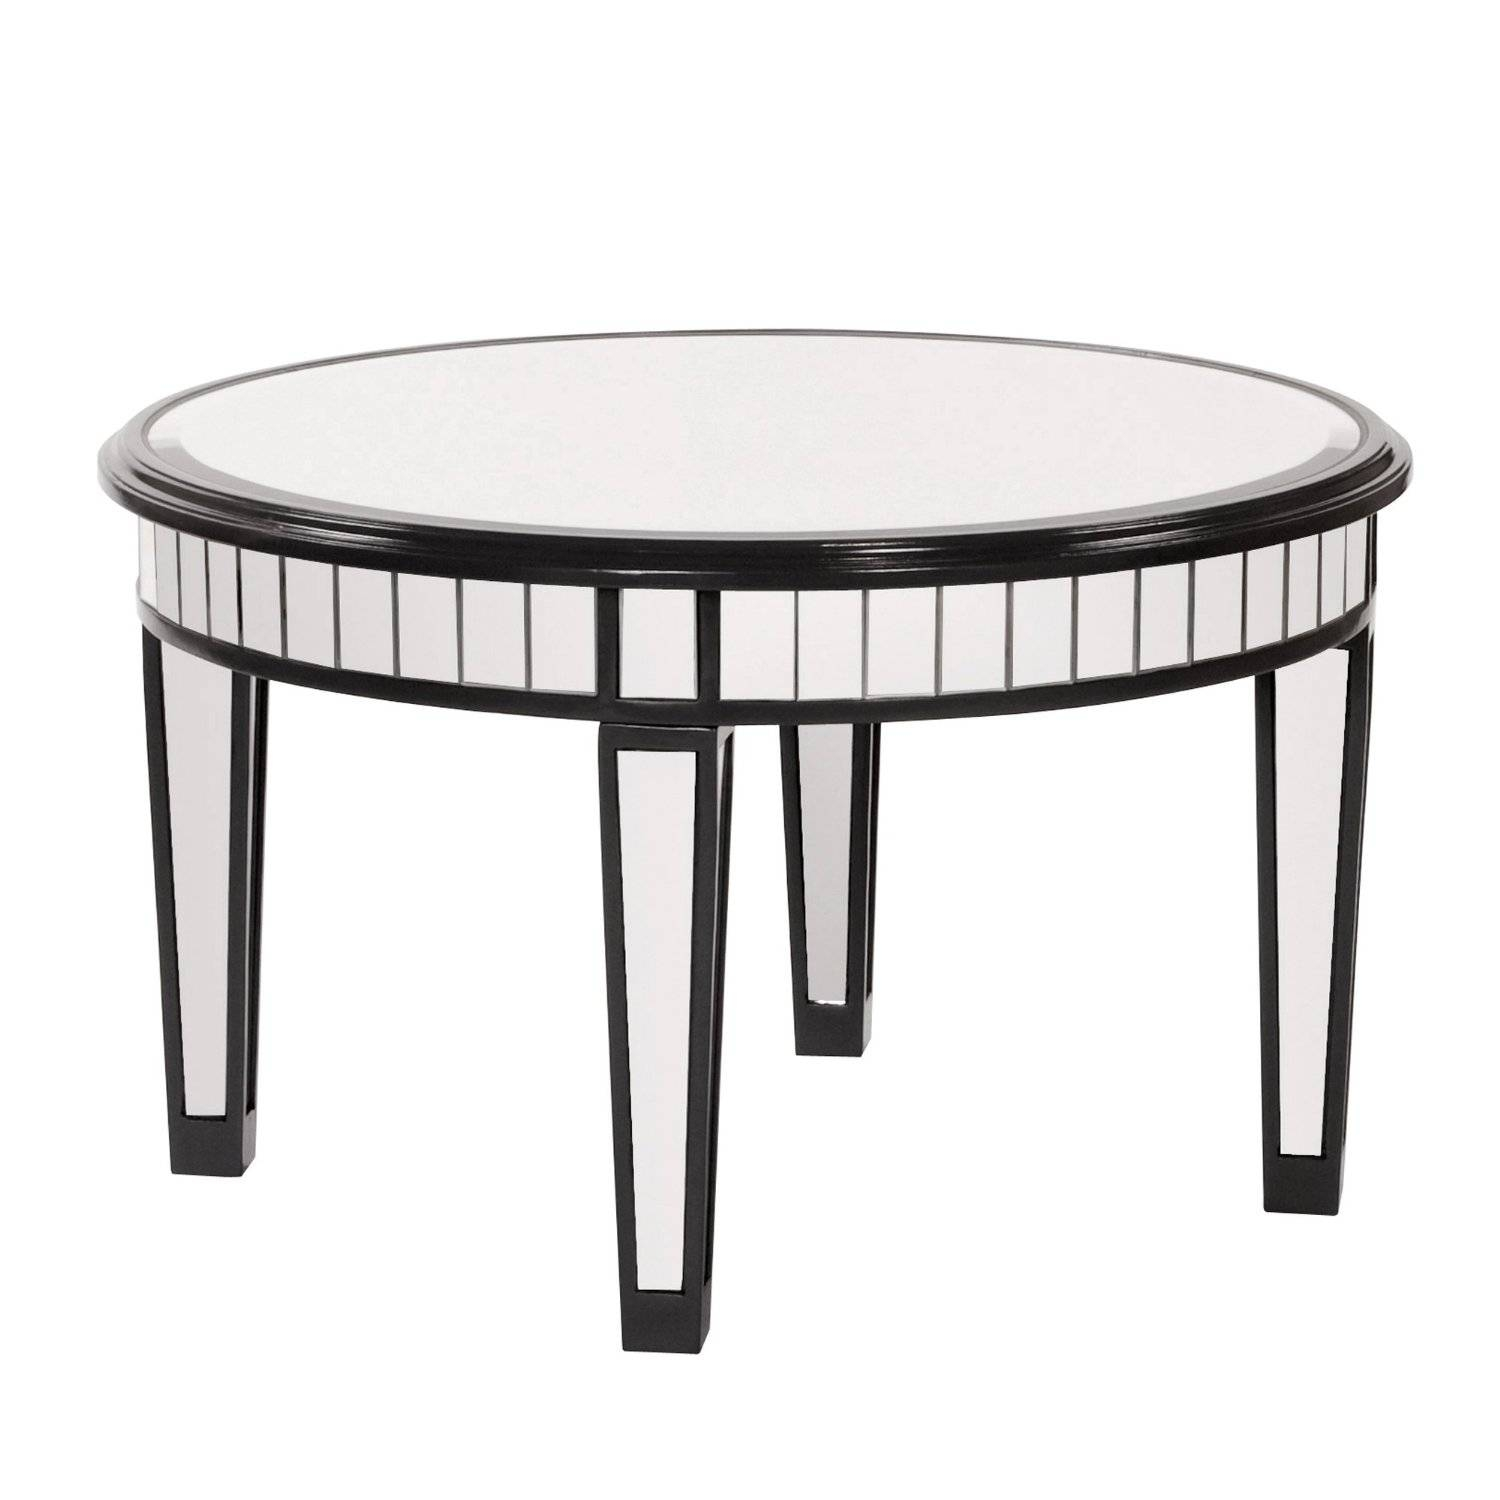 Coffee Table: Breathtaking Circle Coffee Table Ideas Wood Coffee in Antique Mirrored Coffee Tables (Image 10 of 30)